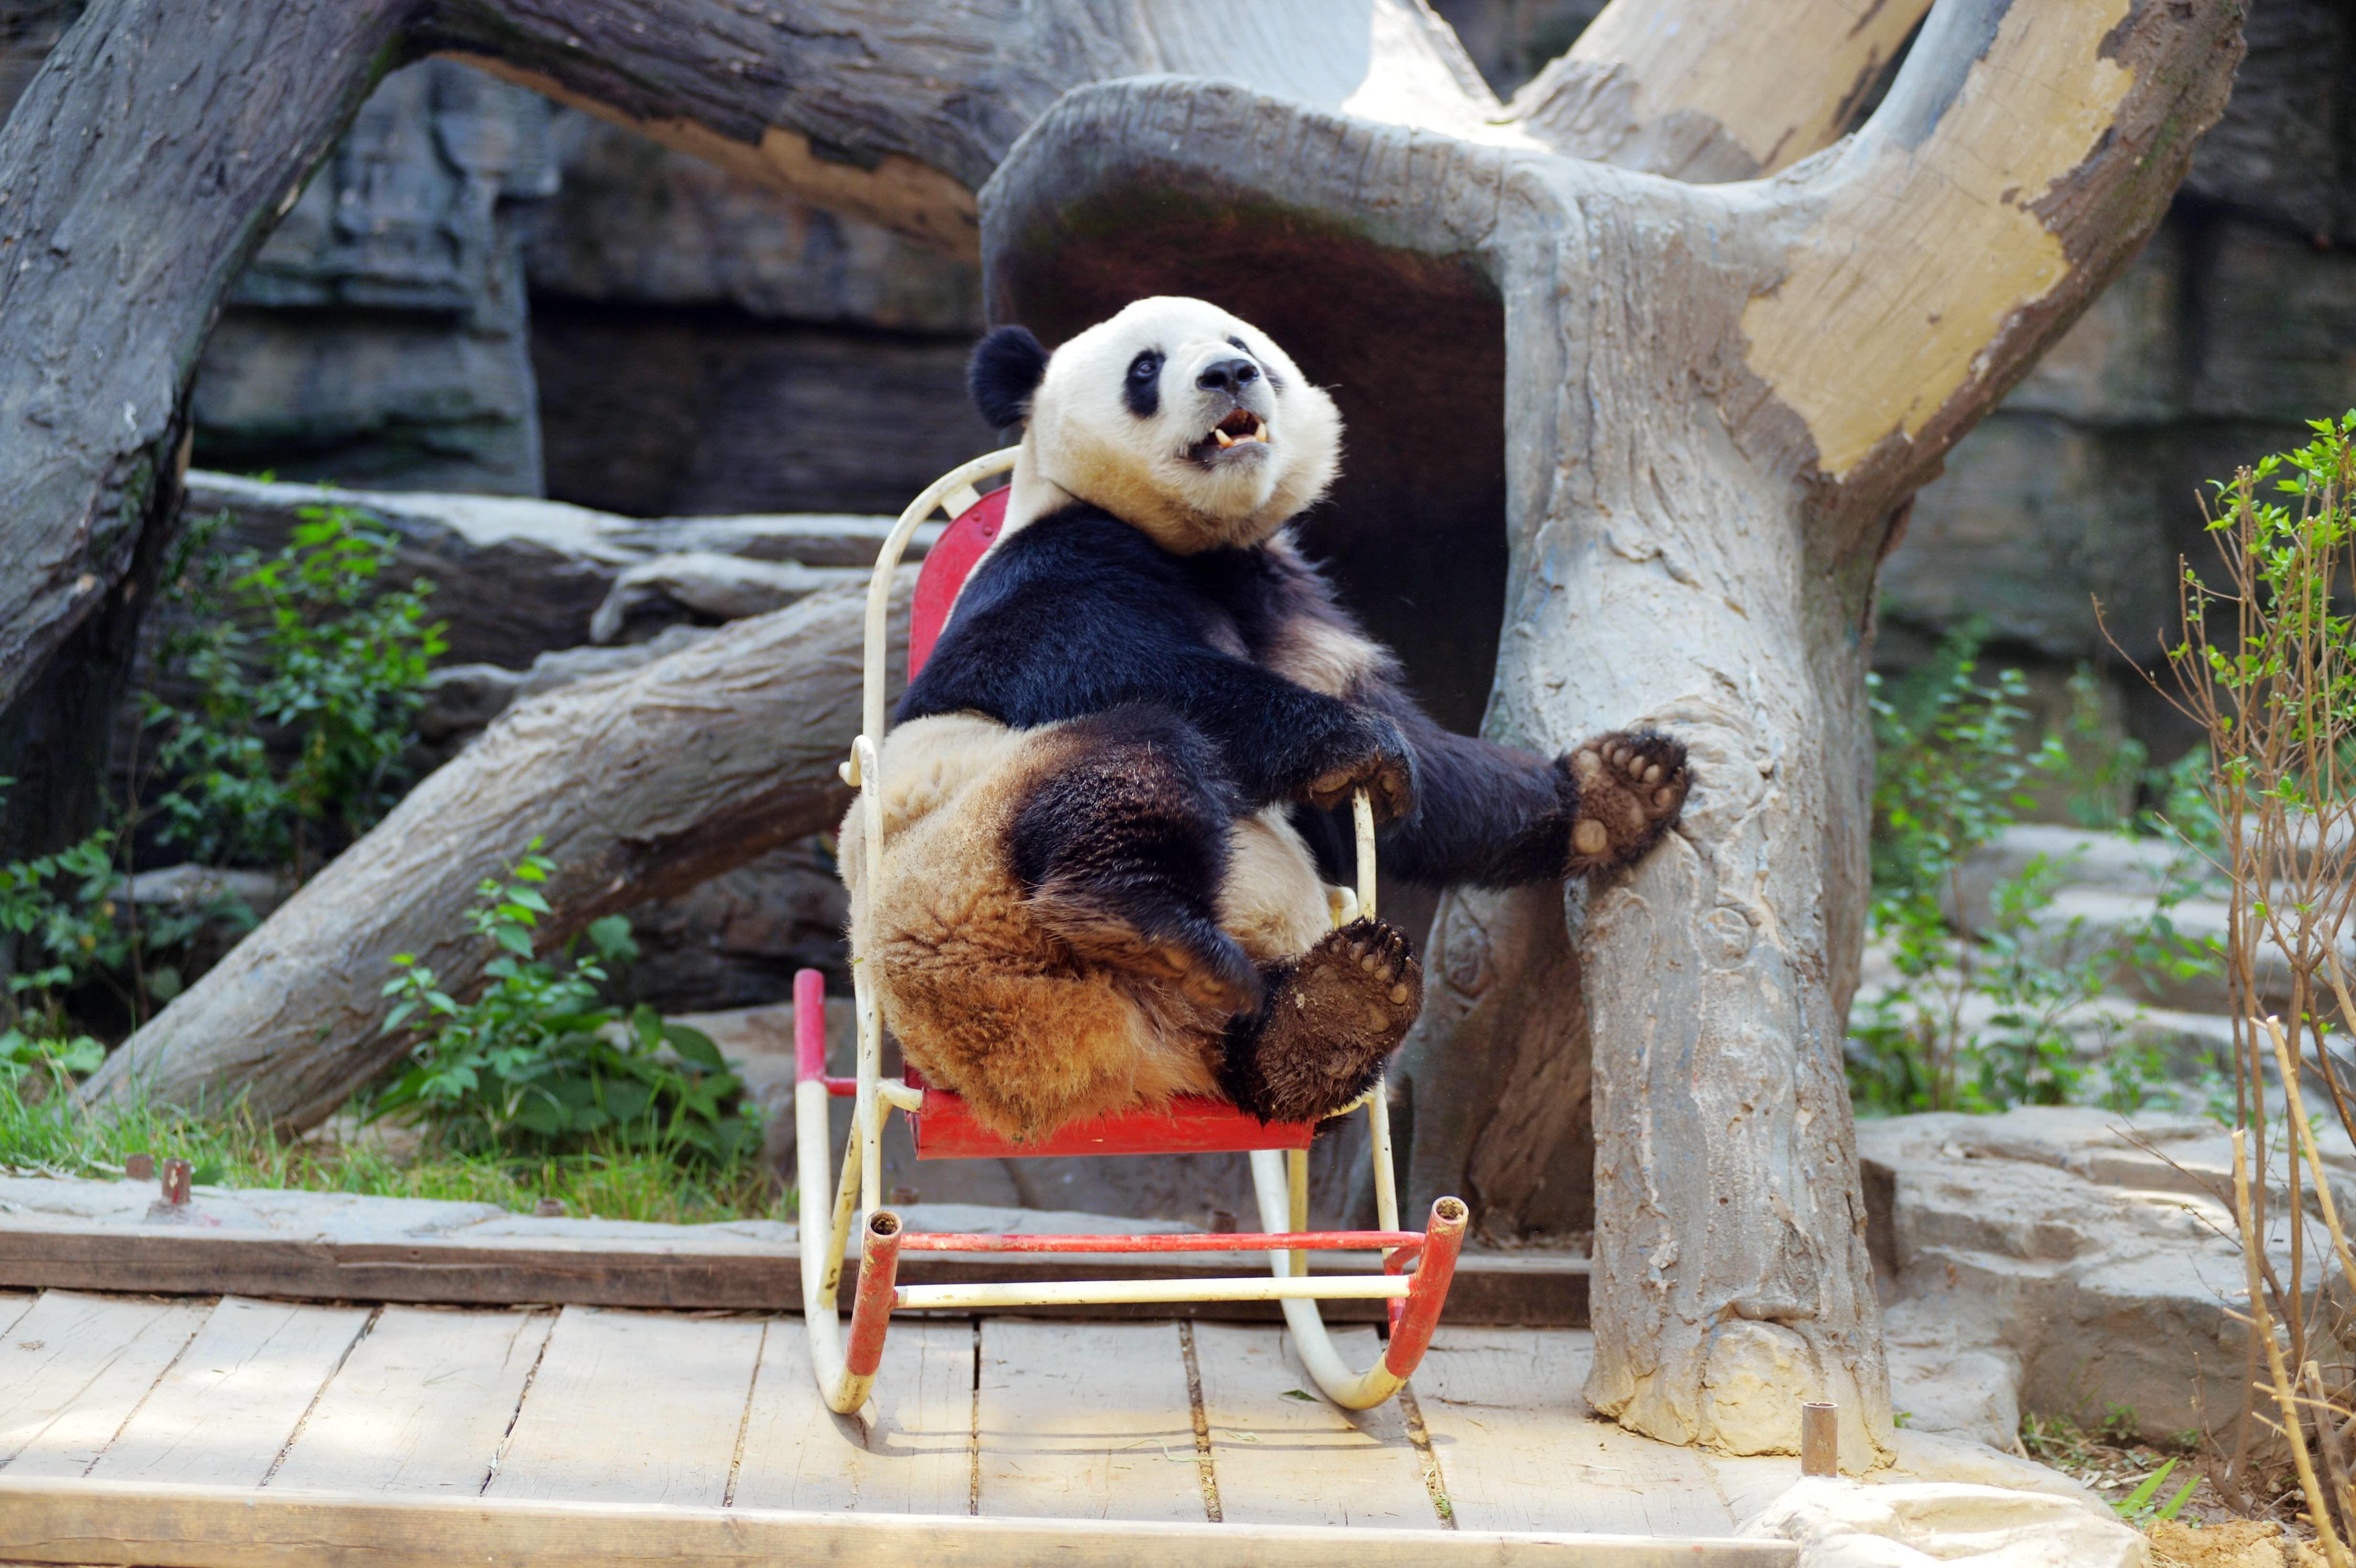 A Giant Panda Plays In A Rocking Chair At Beijing Zoo On May 17, 2017